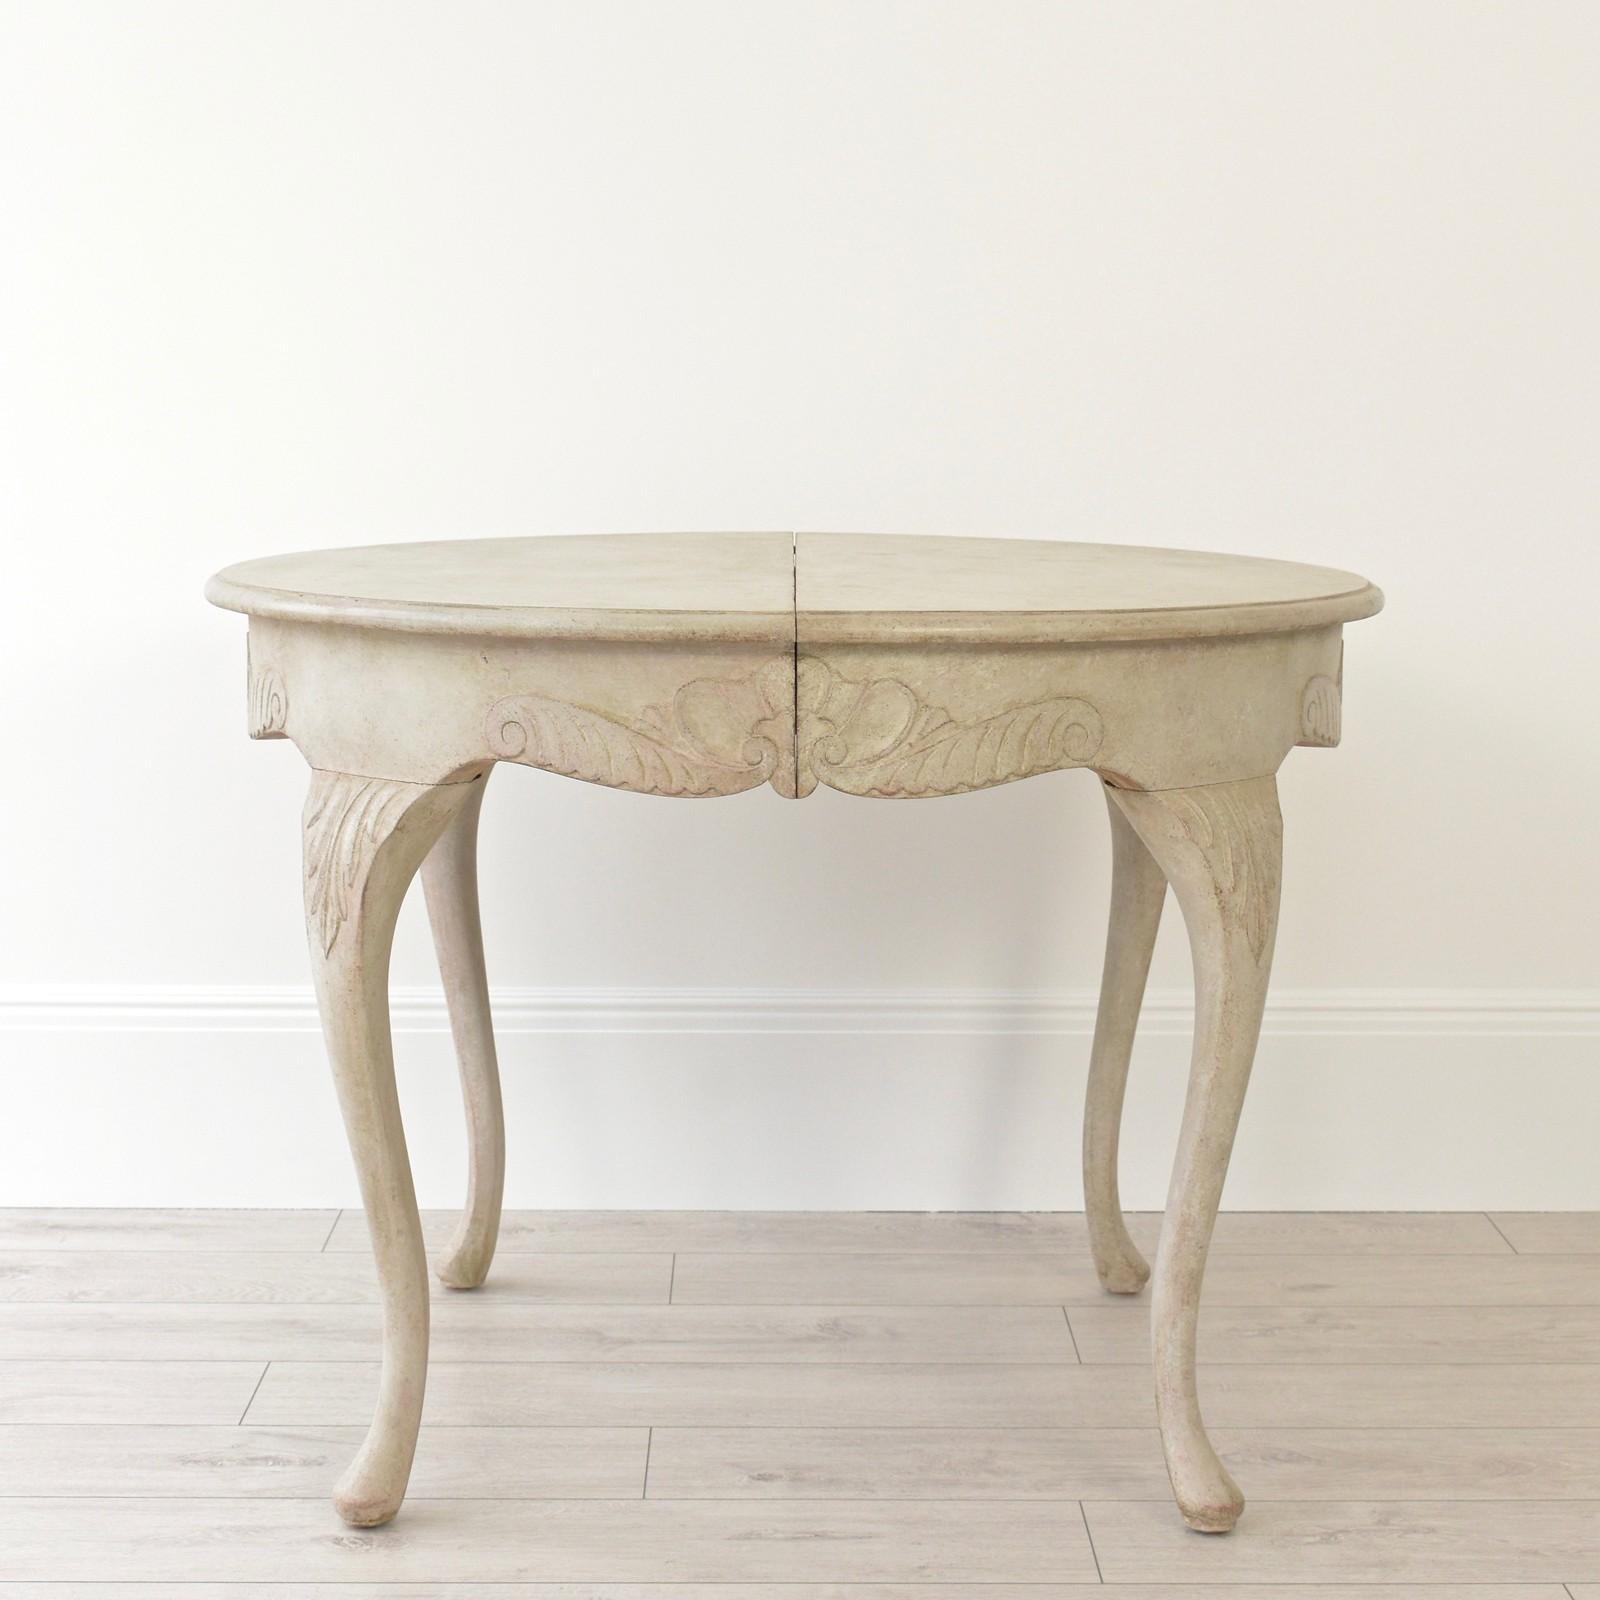 Exceptional Swedish Rococo Dining Table Decorative Collective